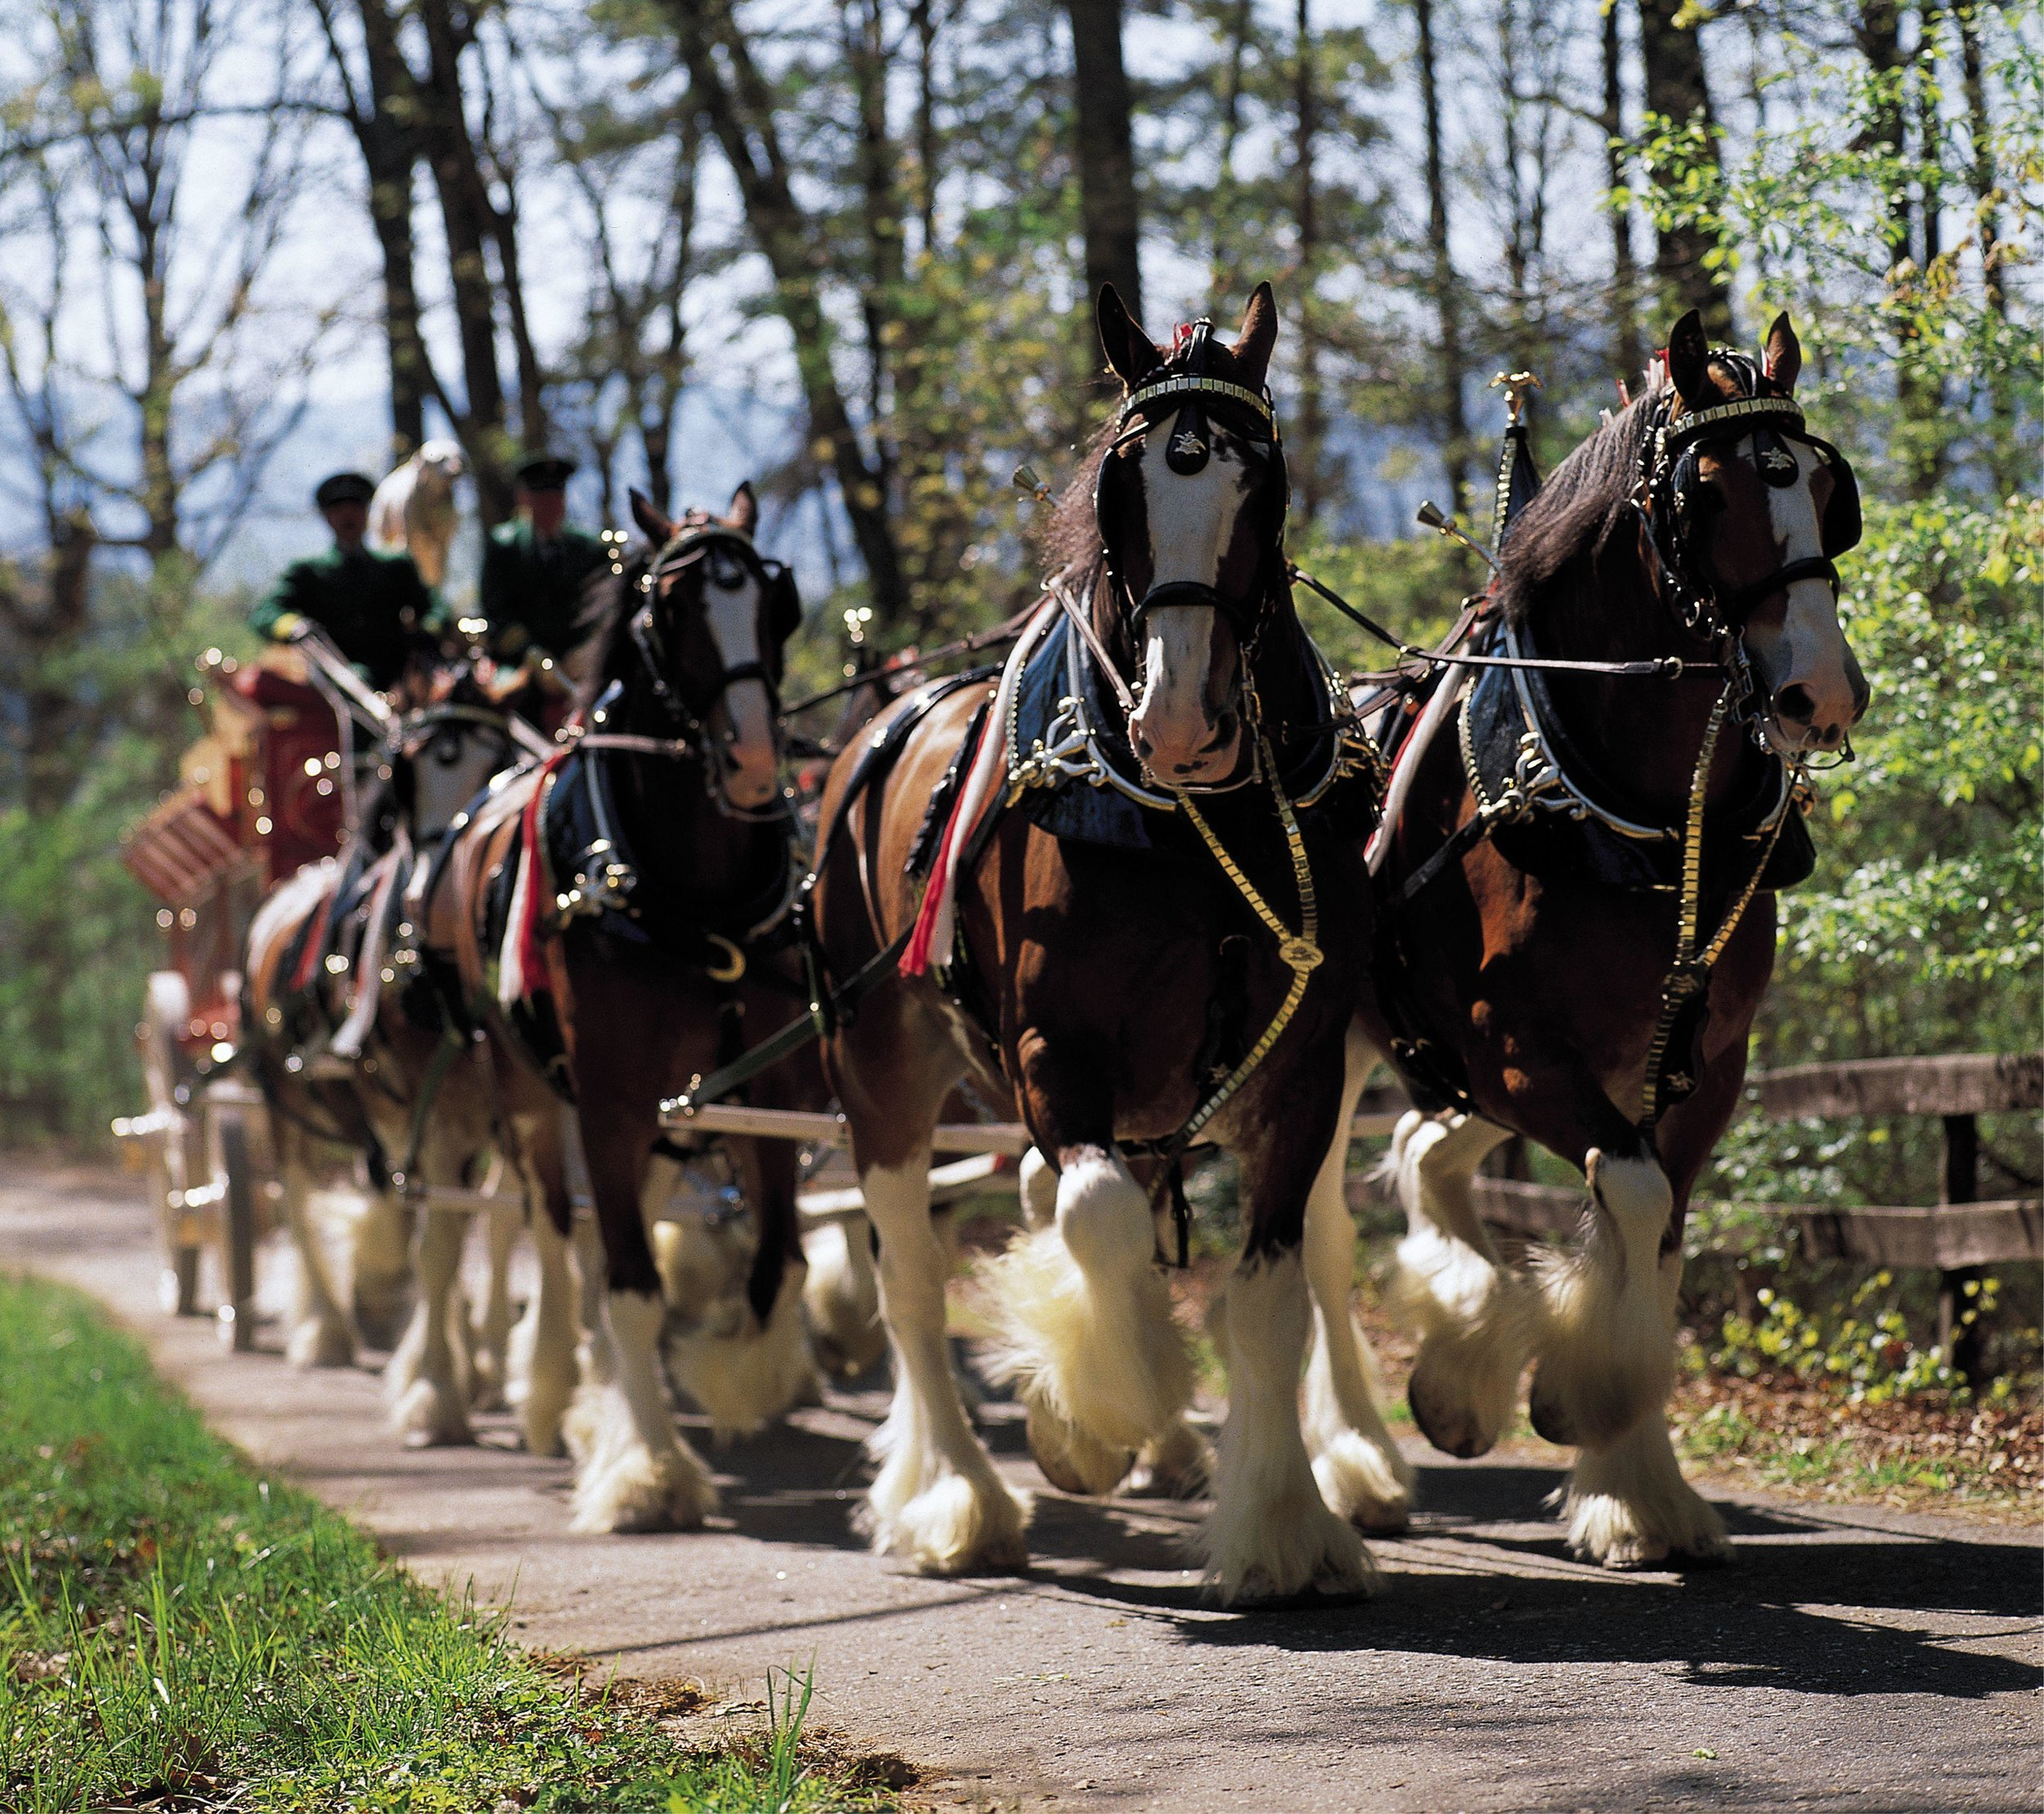 The iconic Budweiser Clydesdales will be stepping out on Detroit Lakes' West Lake Drive this Saturday, June 1 at 1 p.m. The public can also come view the eight-horse team being hitched up to the Budweiser wagon starting at noon. (Submitted photo)